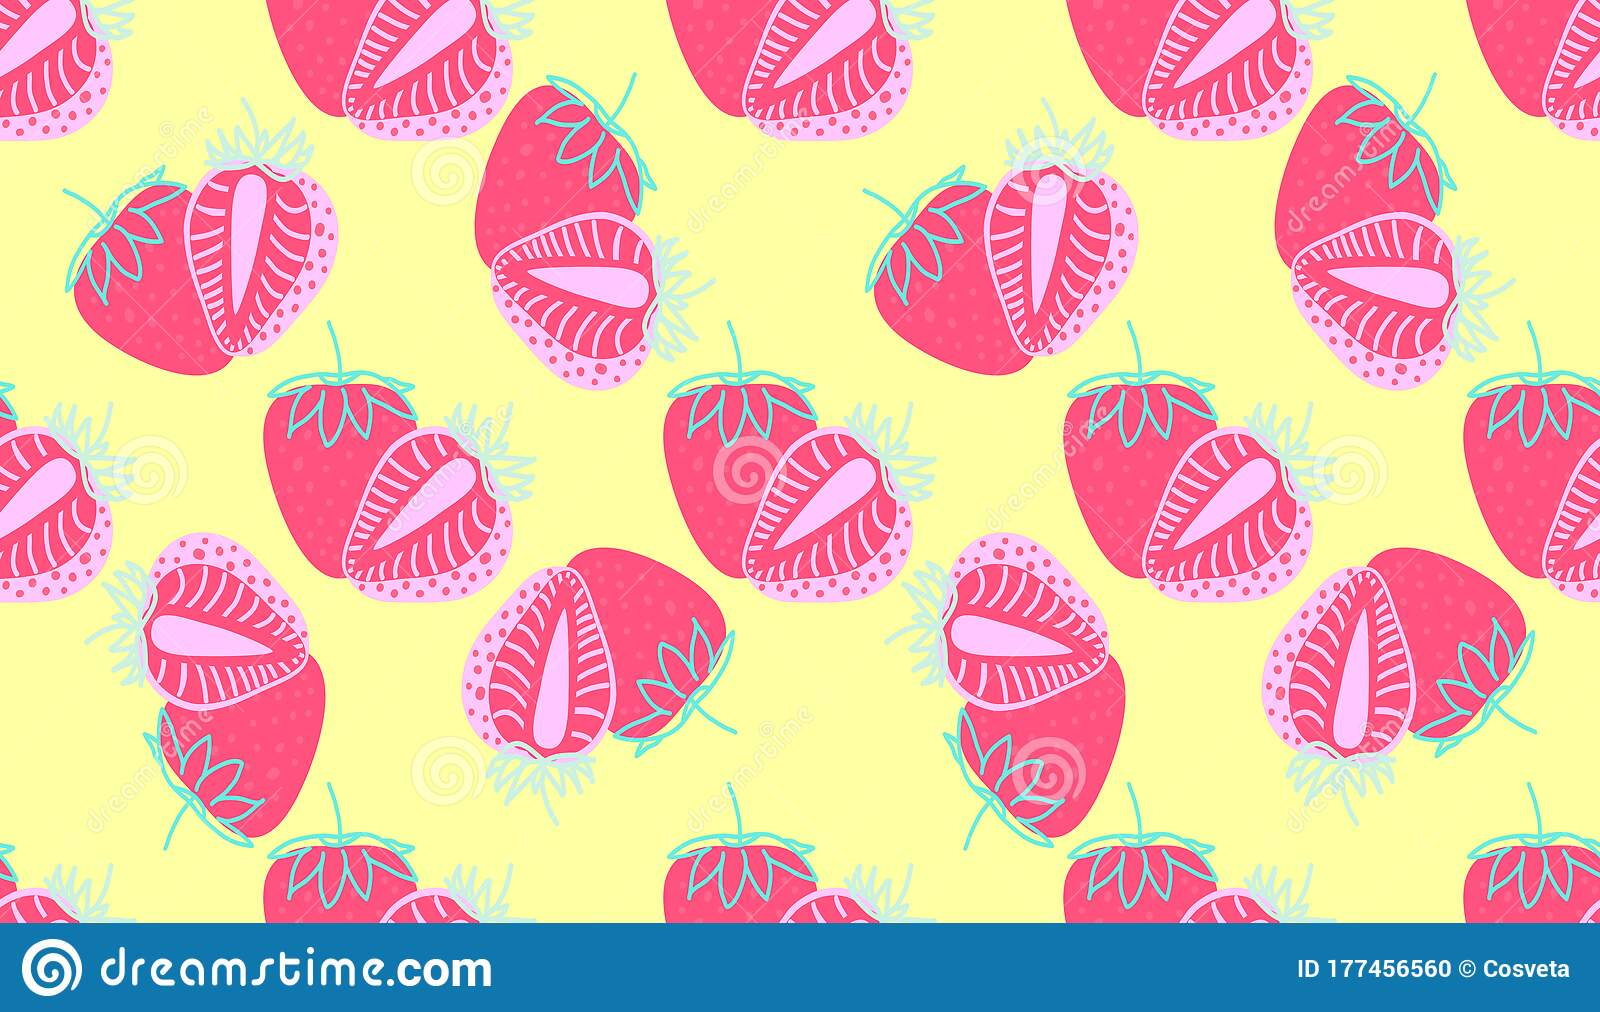 seamless pattern strawberrys virtual background zoom whole sliced pink strawberry berry yellow patterns abstract